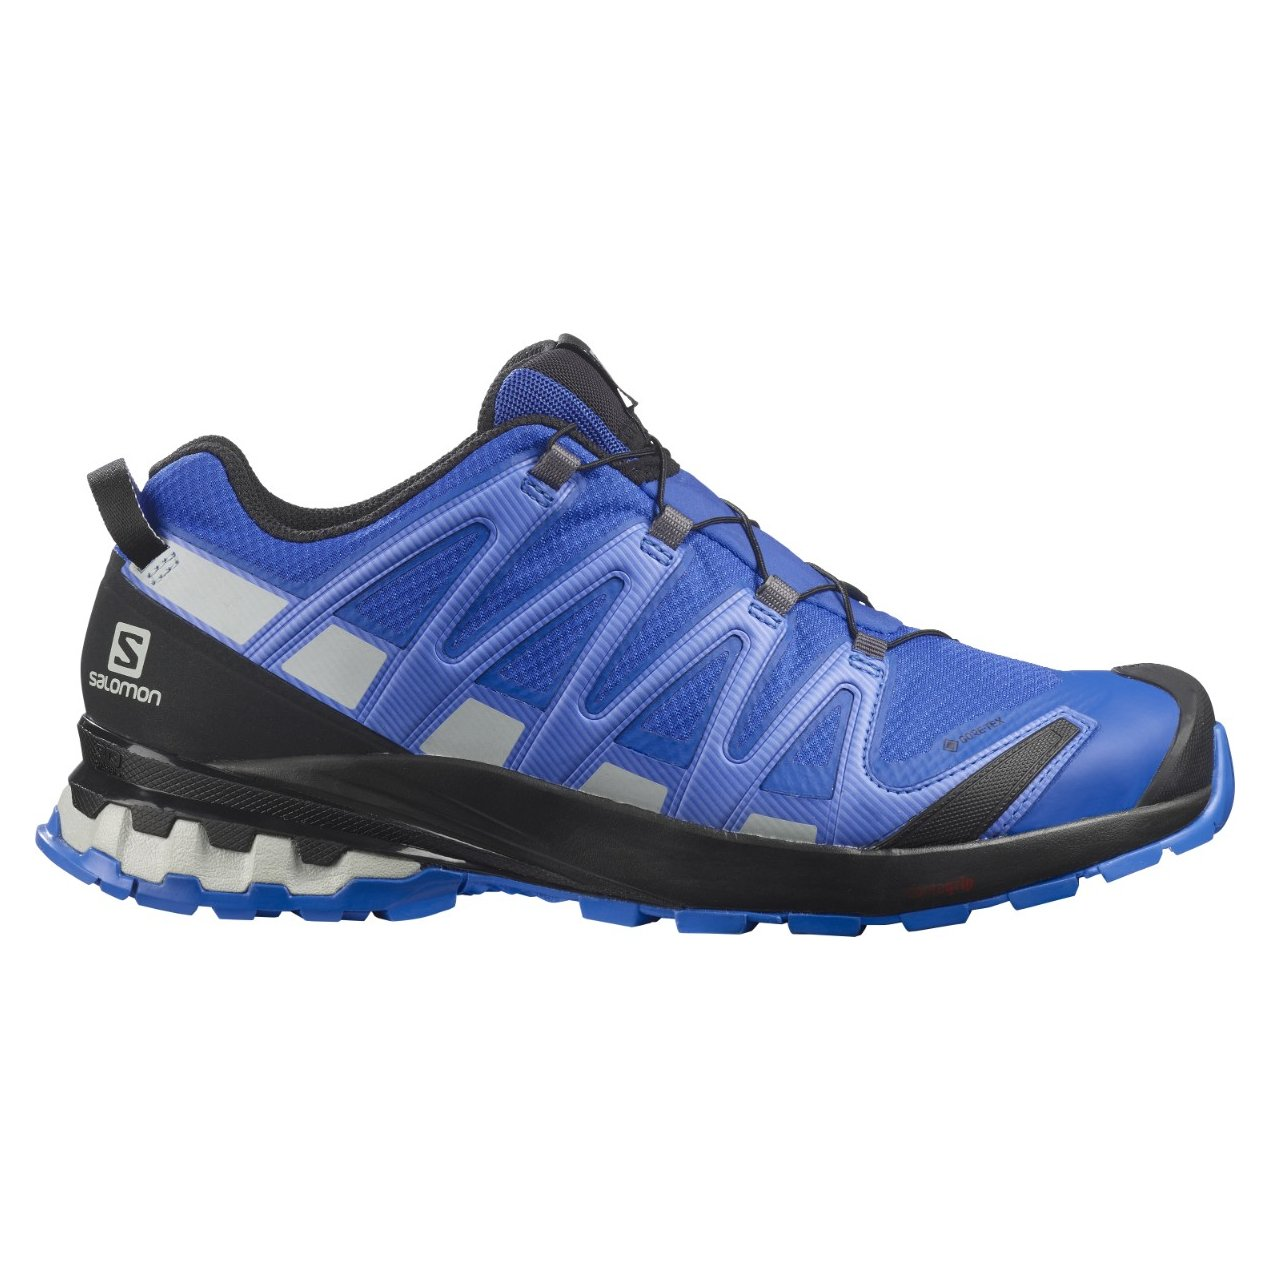 Salomon XA Pro 3D V8 GTX - Turkish Sea/Black/Pearl Blue